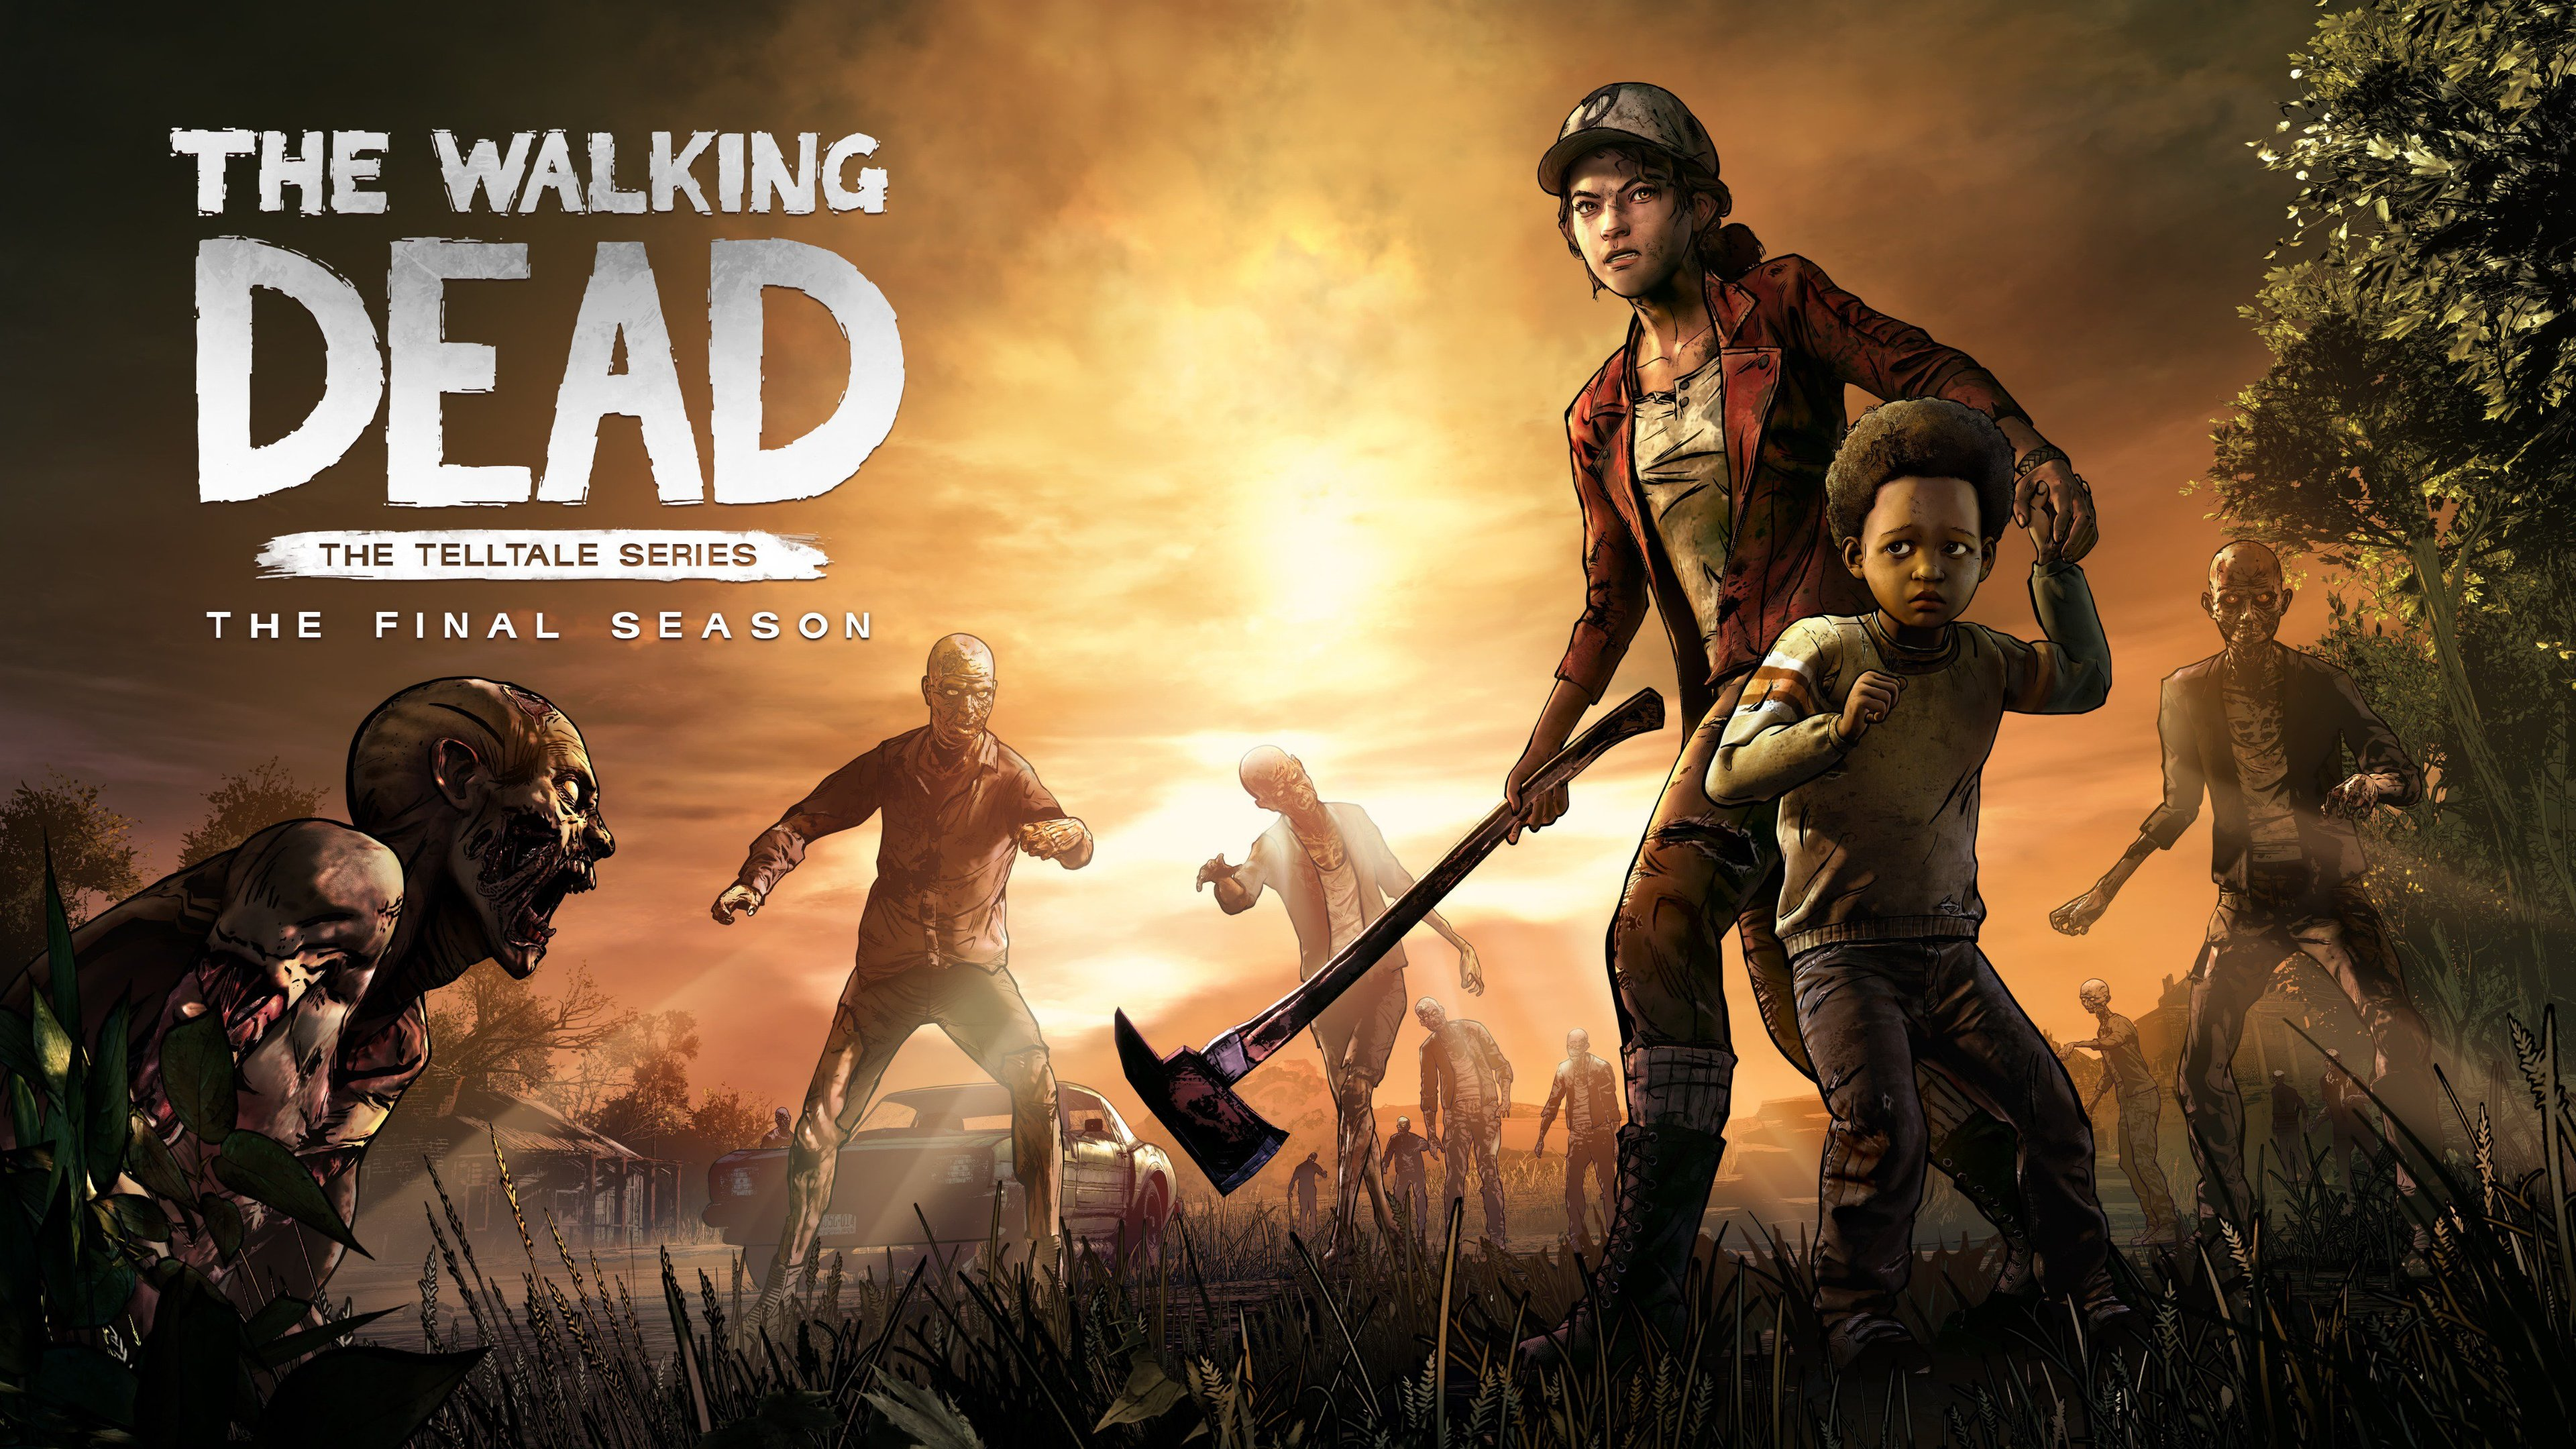 the walking dead the final season 4k 1538343709 - The Walking Dead The Final Season 4k - the walking dead wallpapers, the walking dead the final season wallpapers, hd-wallpapers, games wallpapers, 4k-wallpapers, 2018 games wallpapers